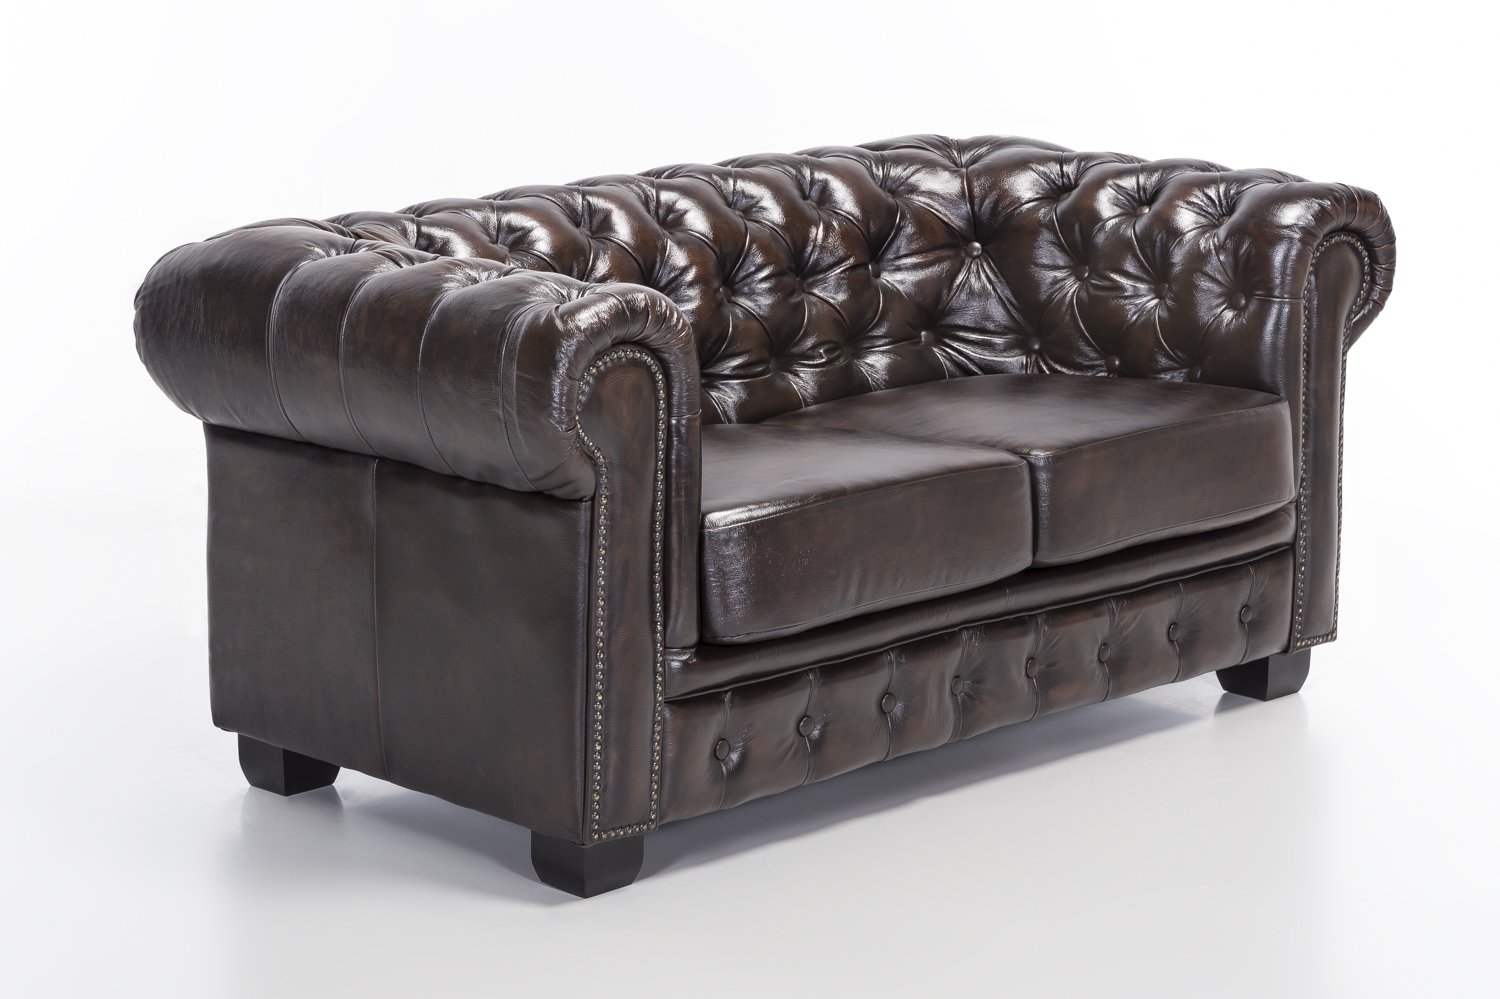 Woodkings Chesterfield Sofa 2er braun vintage Echtleder